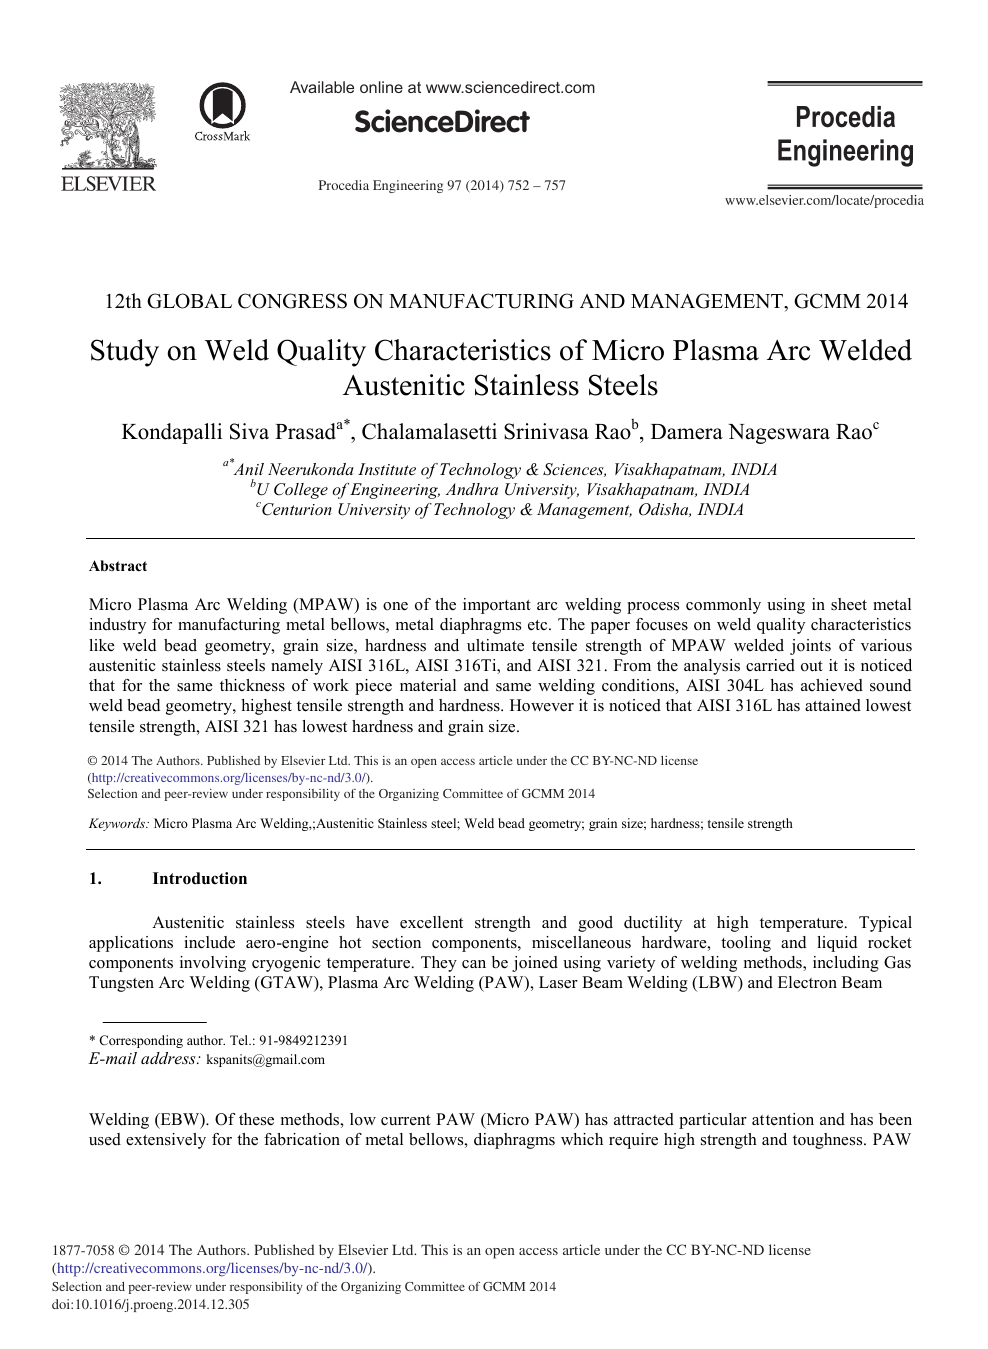 Study On Weld Quality Characteristics Of Micro Plasma Arc Welded Austenitic Stainless Steels Topic Of Research Paper In Materials Engineering Download Scholarly Article Pdf And Read For Free On Cyberleninka Open